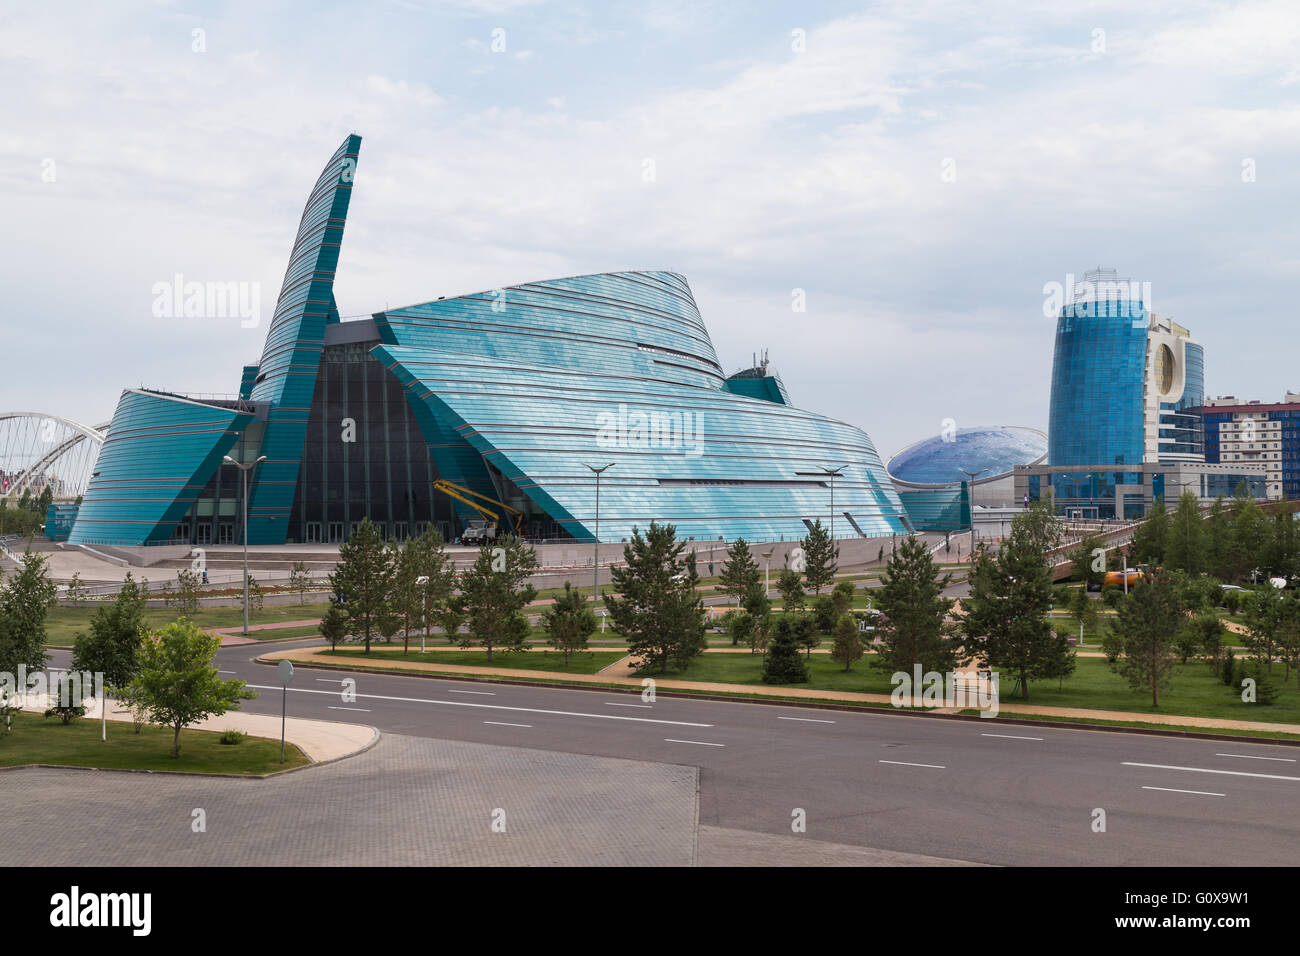 Concert Hall in Astana, Kazakhstan - Stock Image